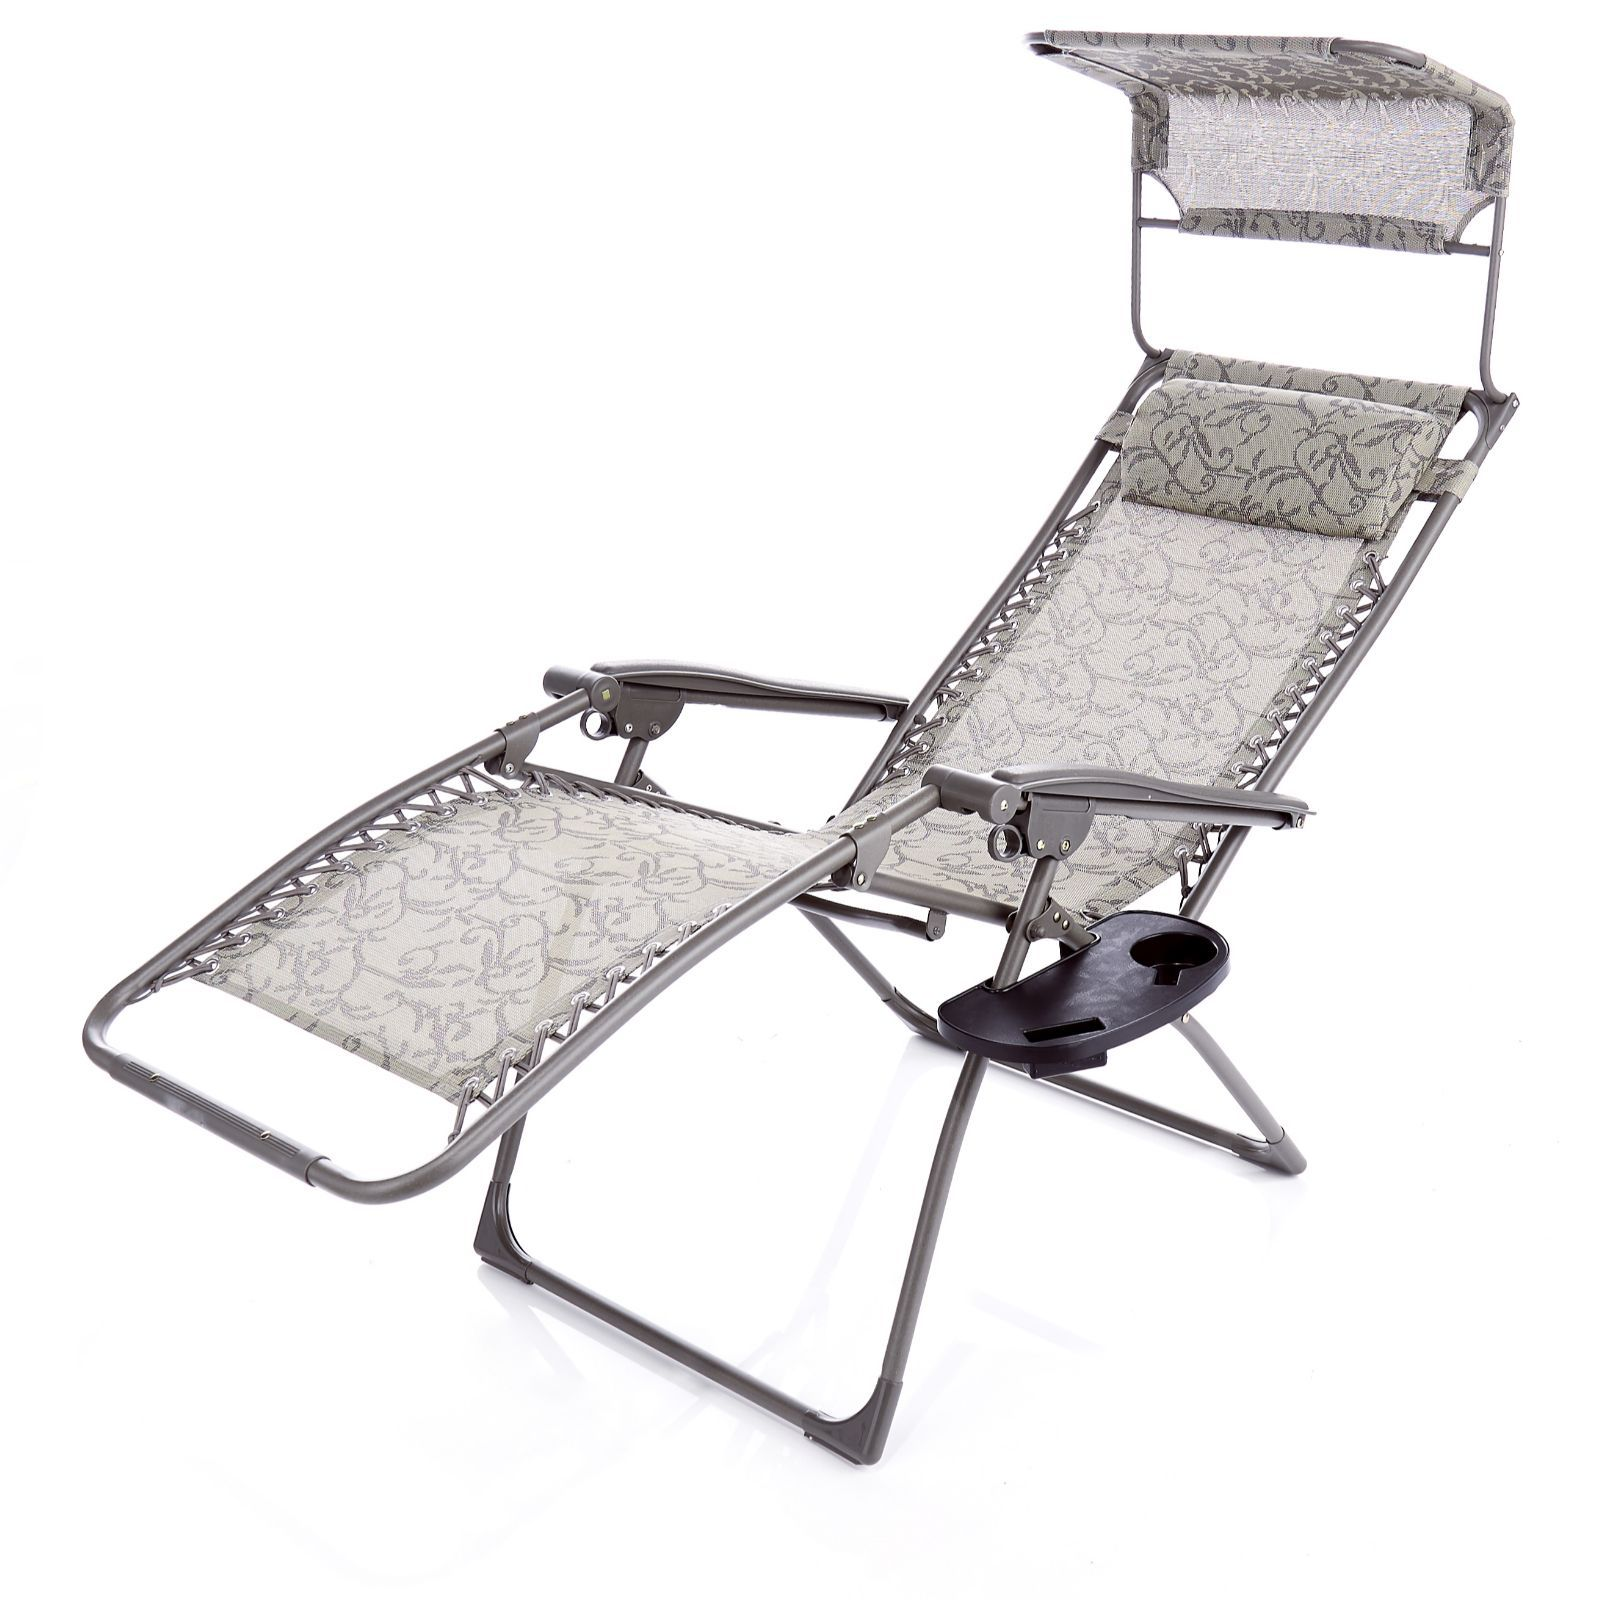 Multi Position Outdoor Recliner Chair With Canopy Drinks Holder Bag Order Online At QVCUK